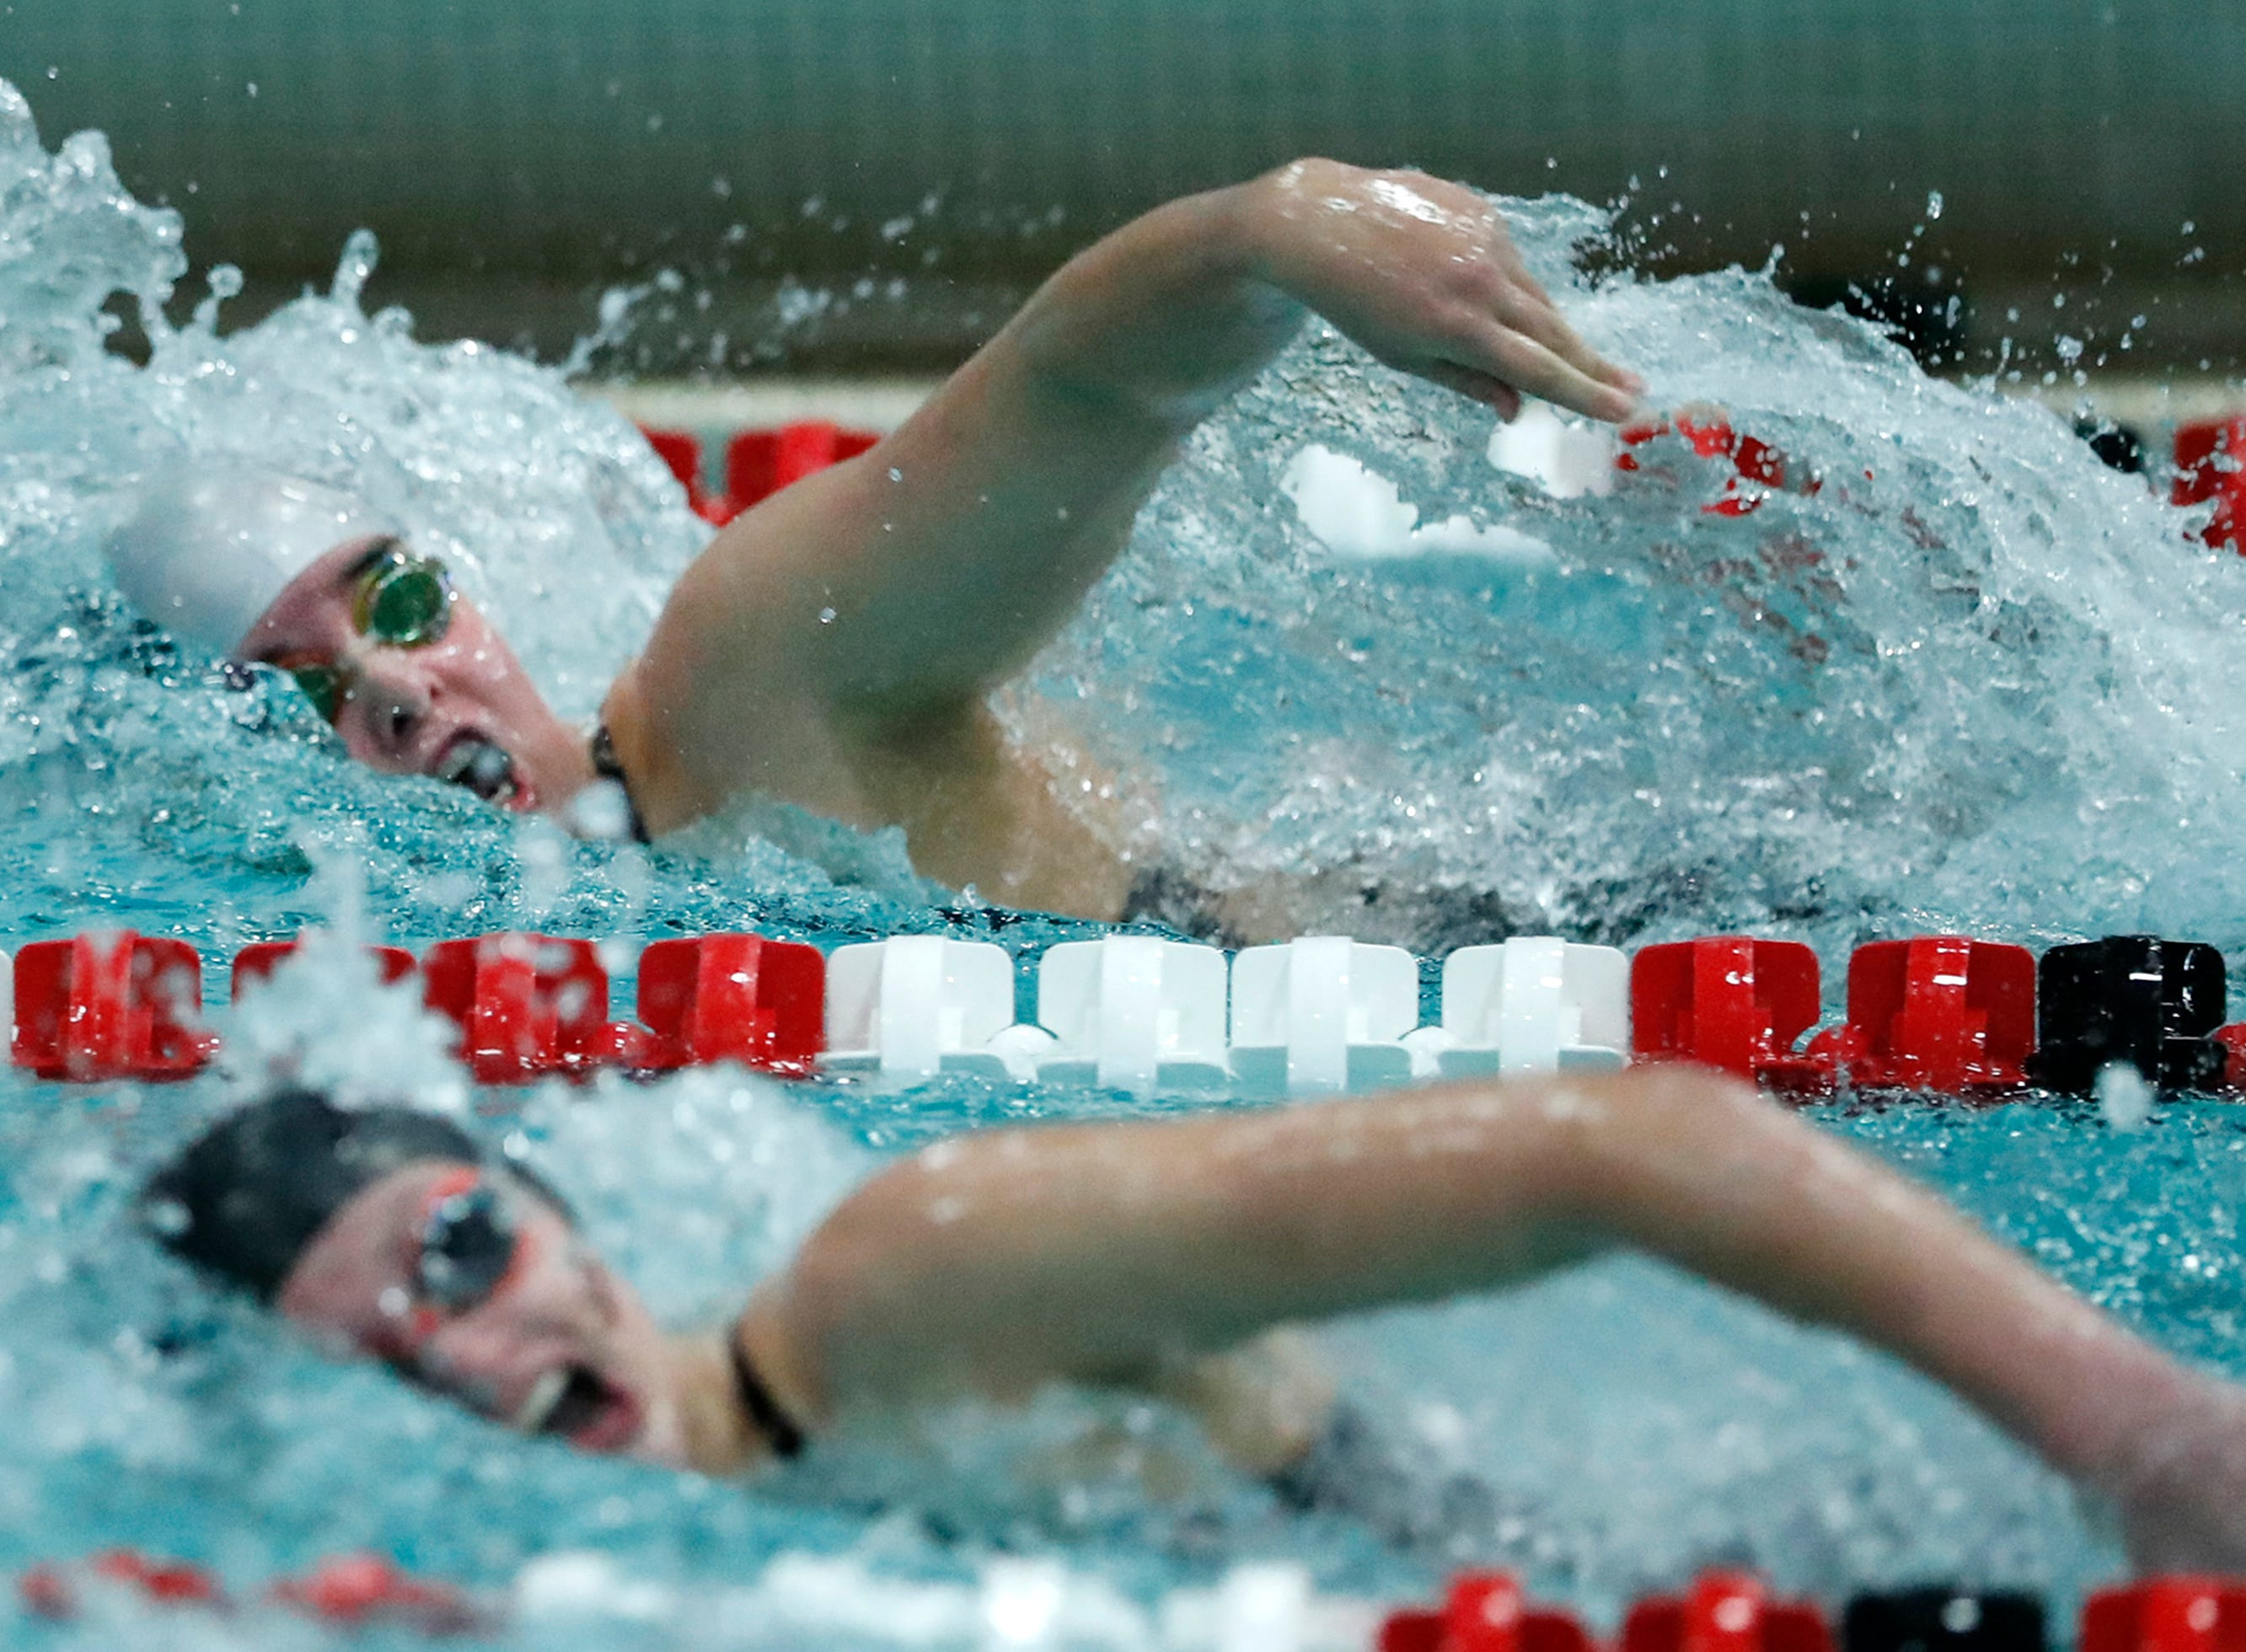 Merrill's Claire Schultz races in the 100 yard freestyle during the WIAA Division 2 State Swimming and Diving meet Friday, Nov. 9, 2018, at the UW Natatorium in Madison, Wis.Danny Damiani/USA TODAY NETWORK-Wisconsin